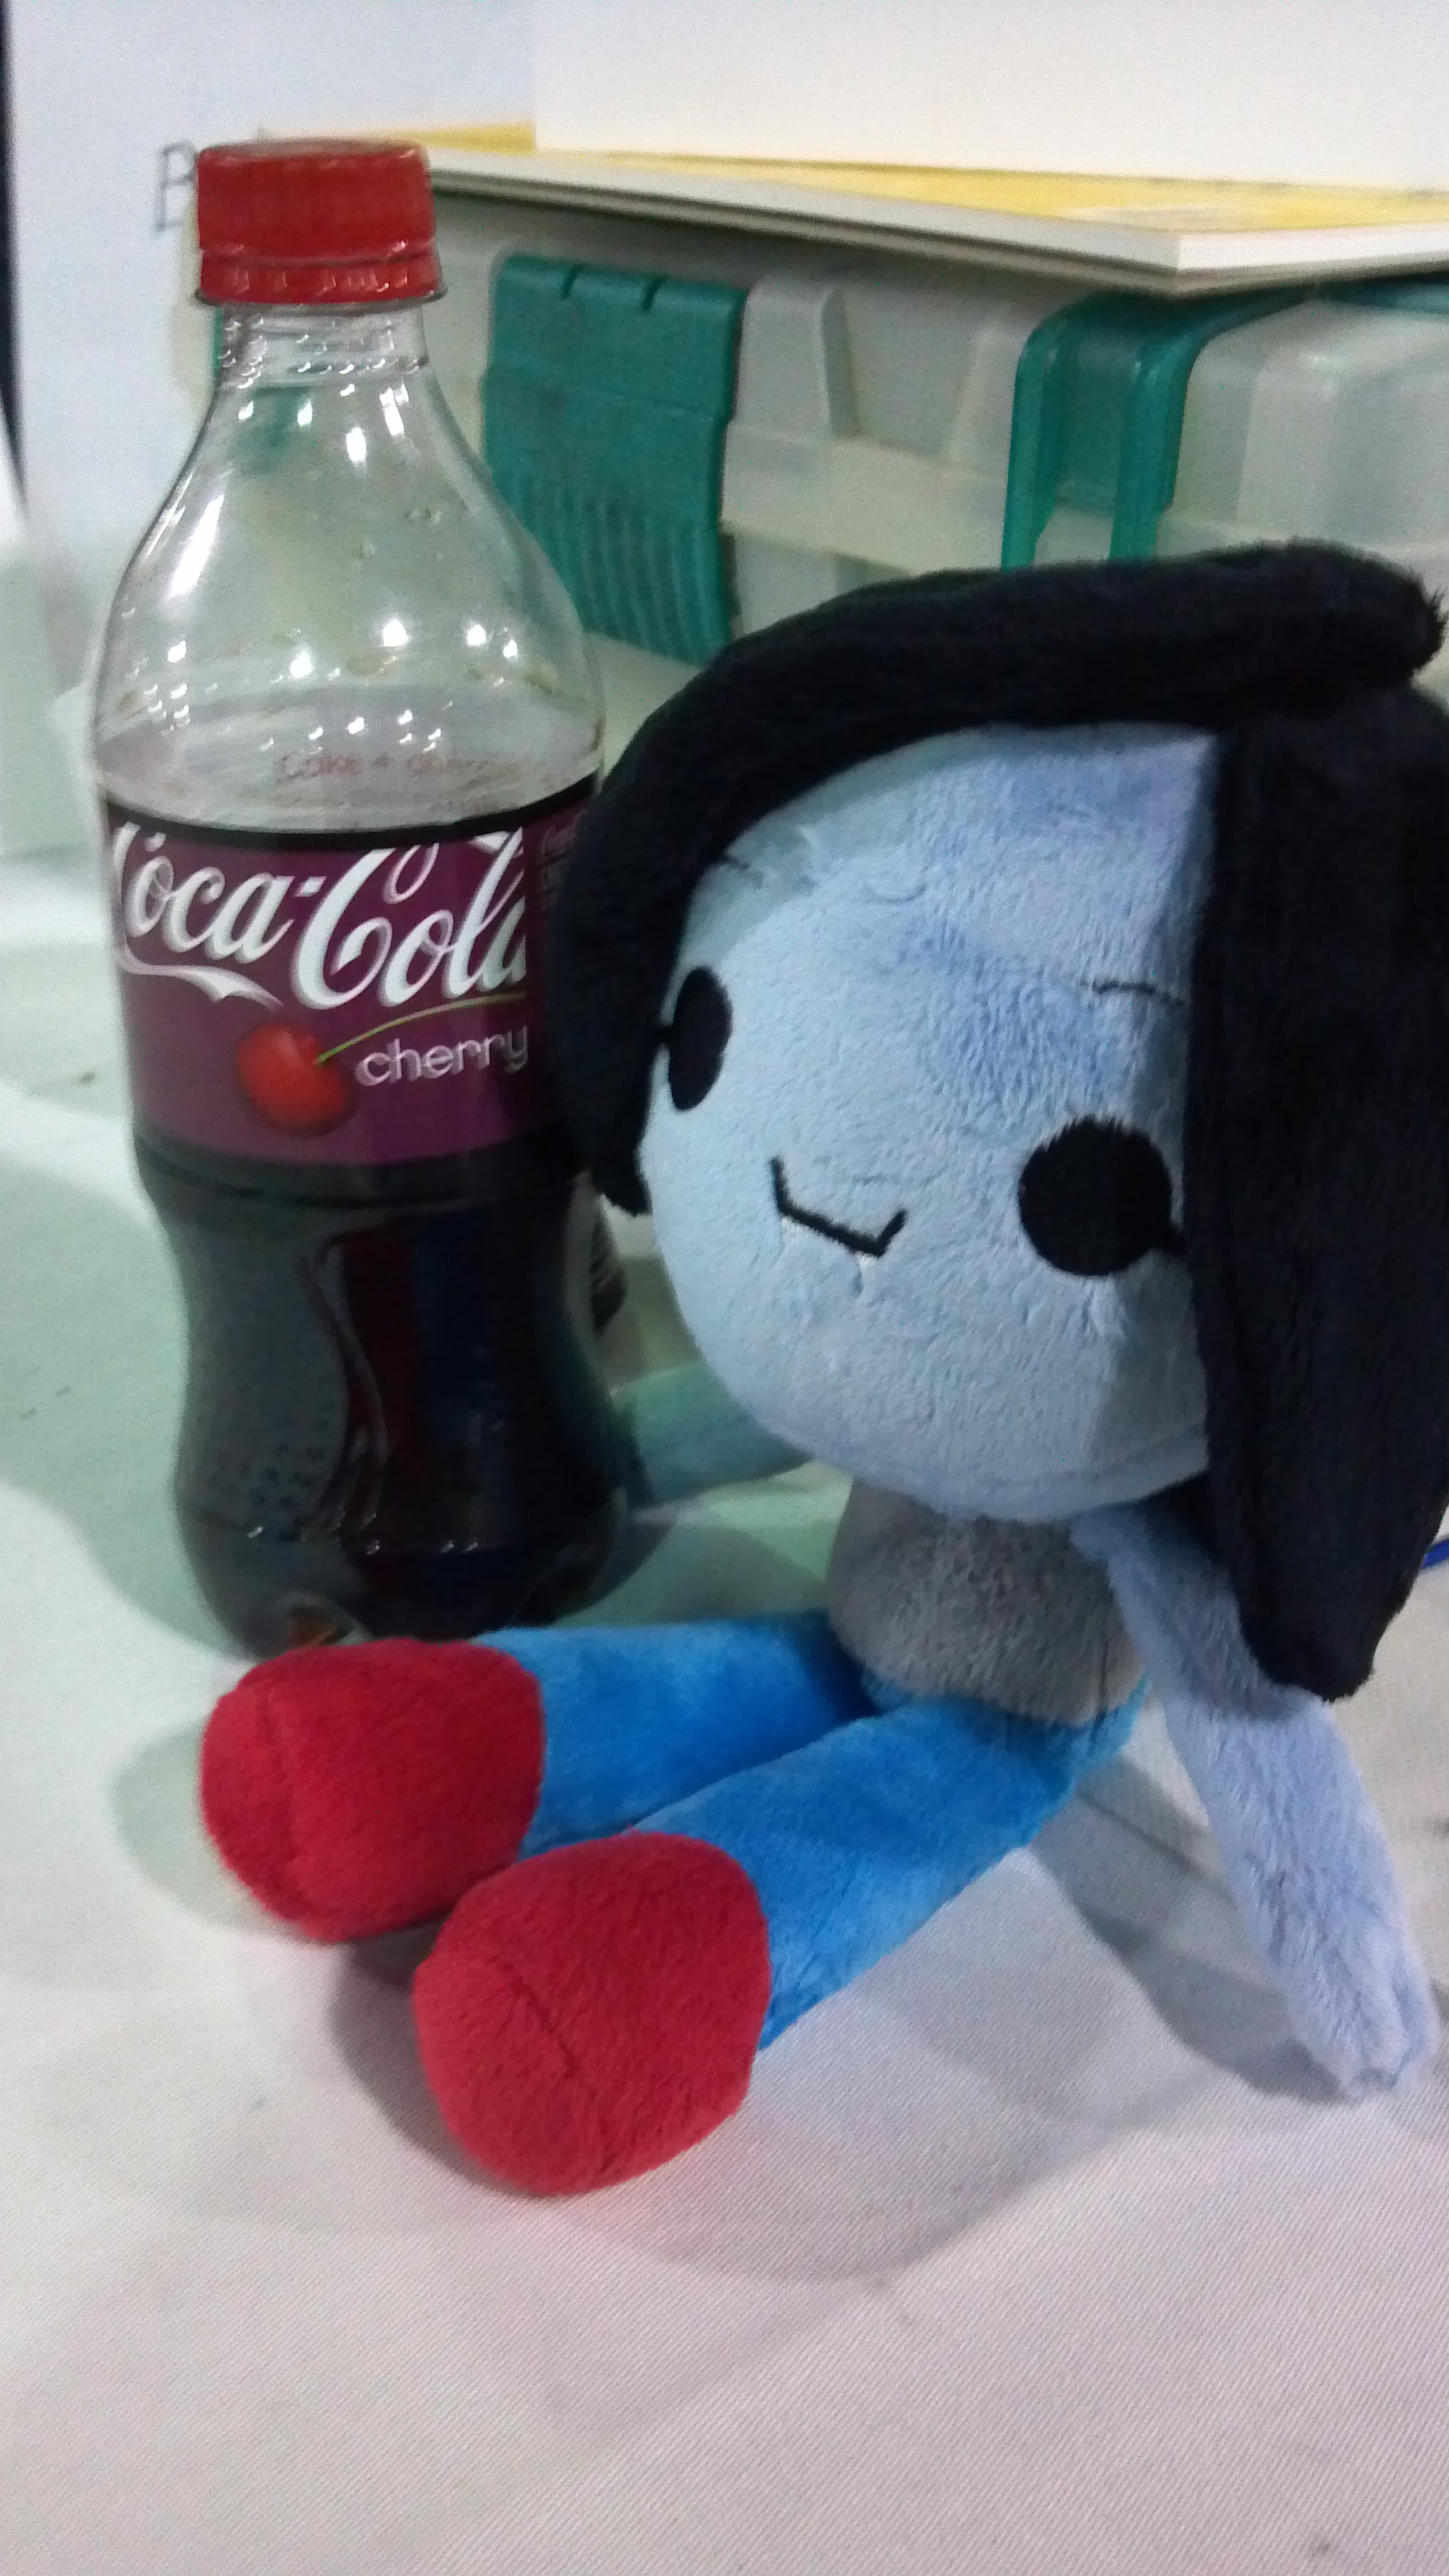 Doll with Coke